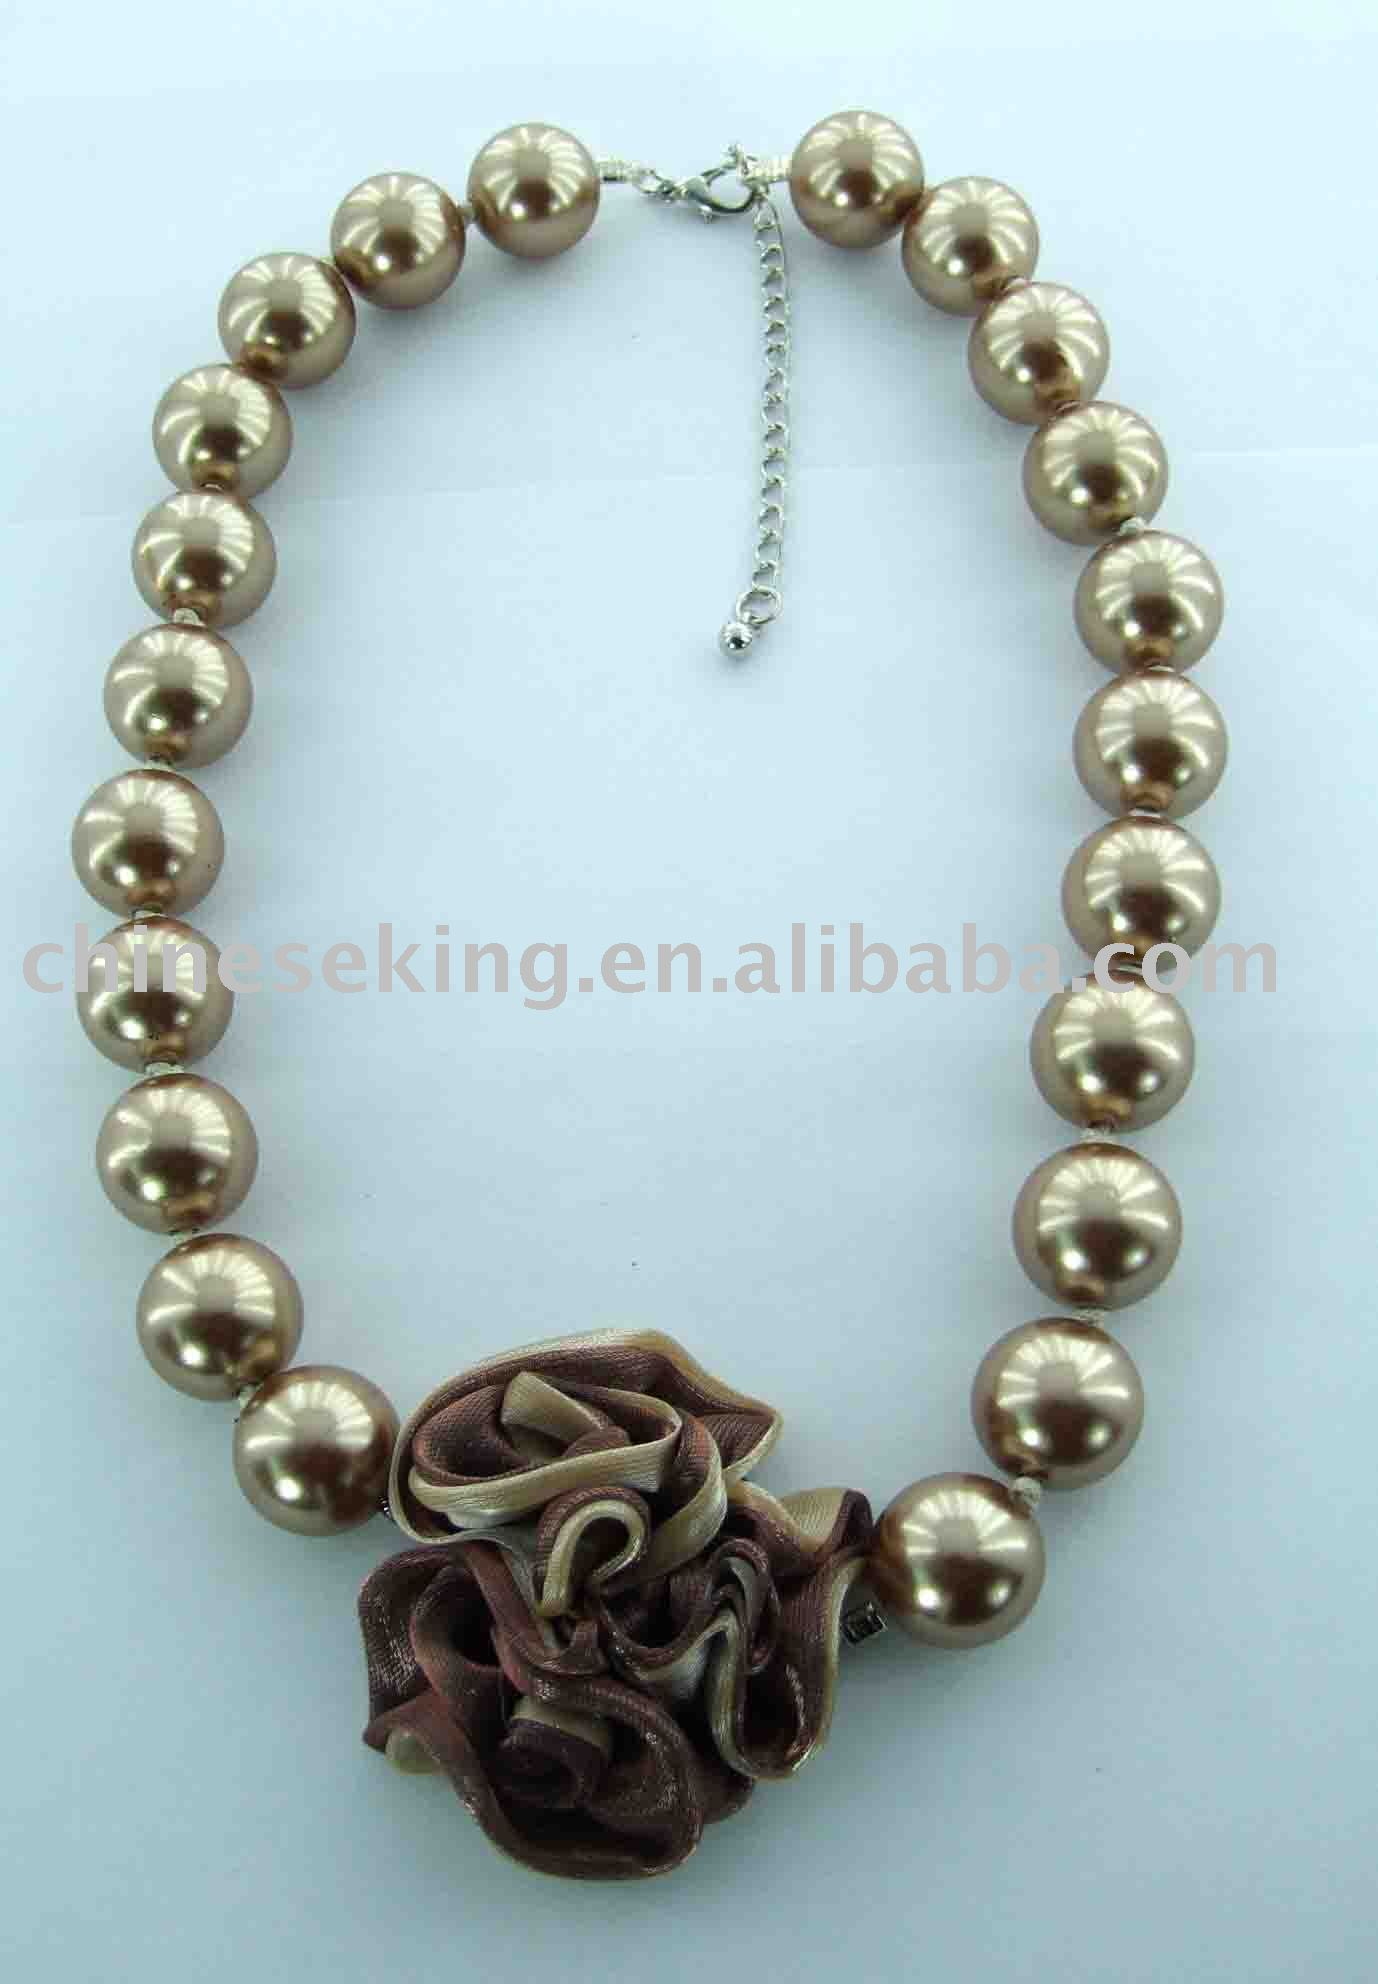 imitation pearl necklace with fabric flower, color pearl costume jewelry